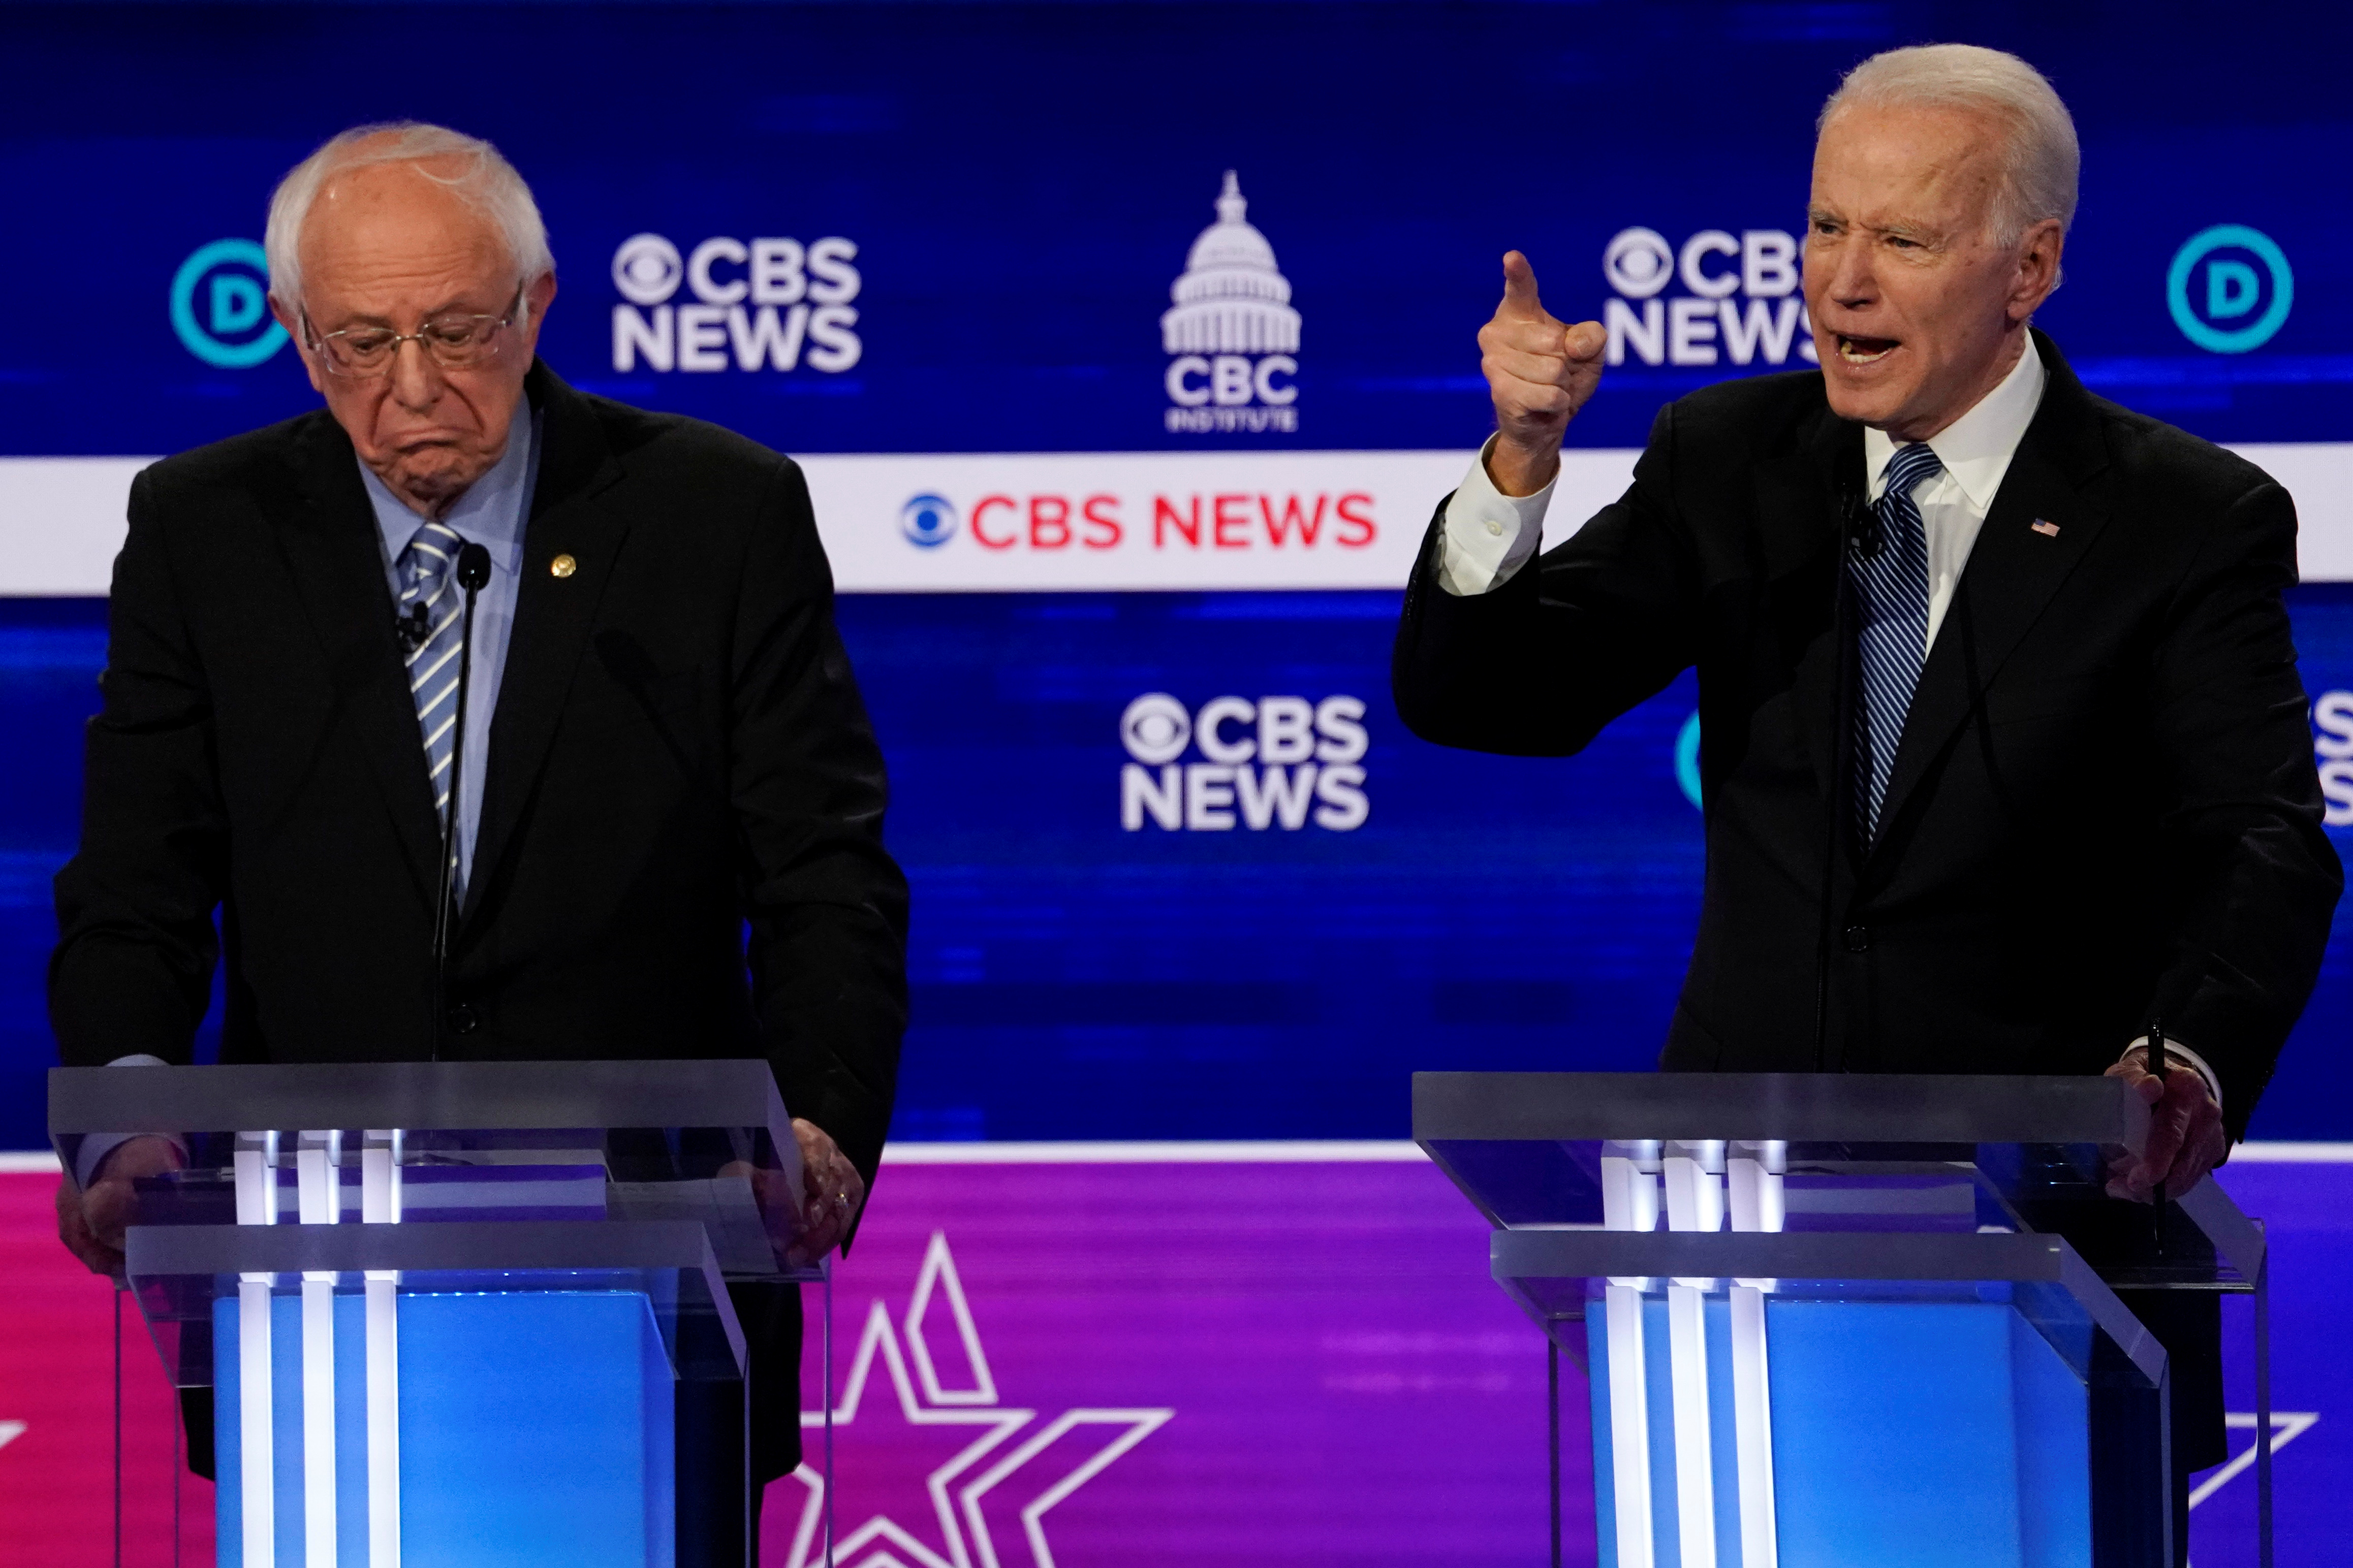 Democratic 2020 U.S. presidential candidates Senator Bernie Sanders and former Vice President Joe Biden participate in the tenth Democratic 2020 presidential debate at the Gaillard Center in Charleston, South Carolina, U.S. Feb. 25, 2020. REUTERS/Jonathan Ernst